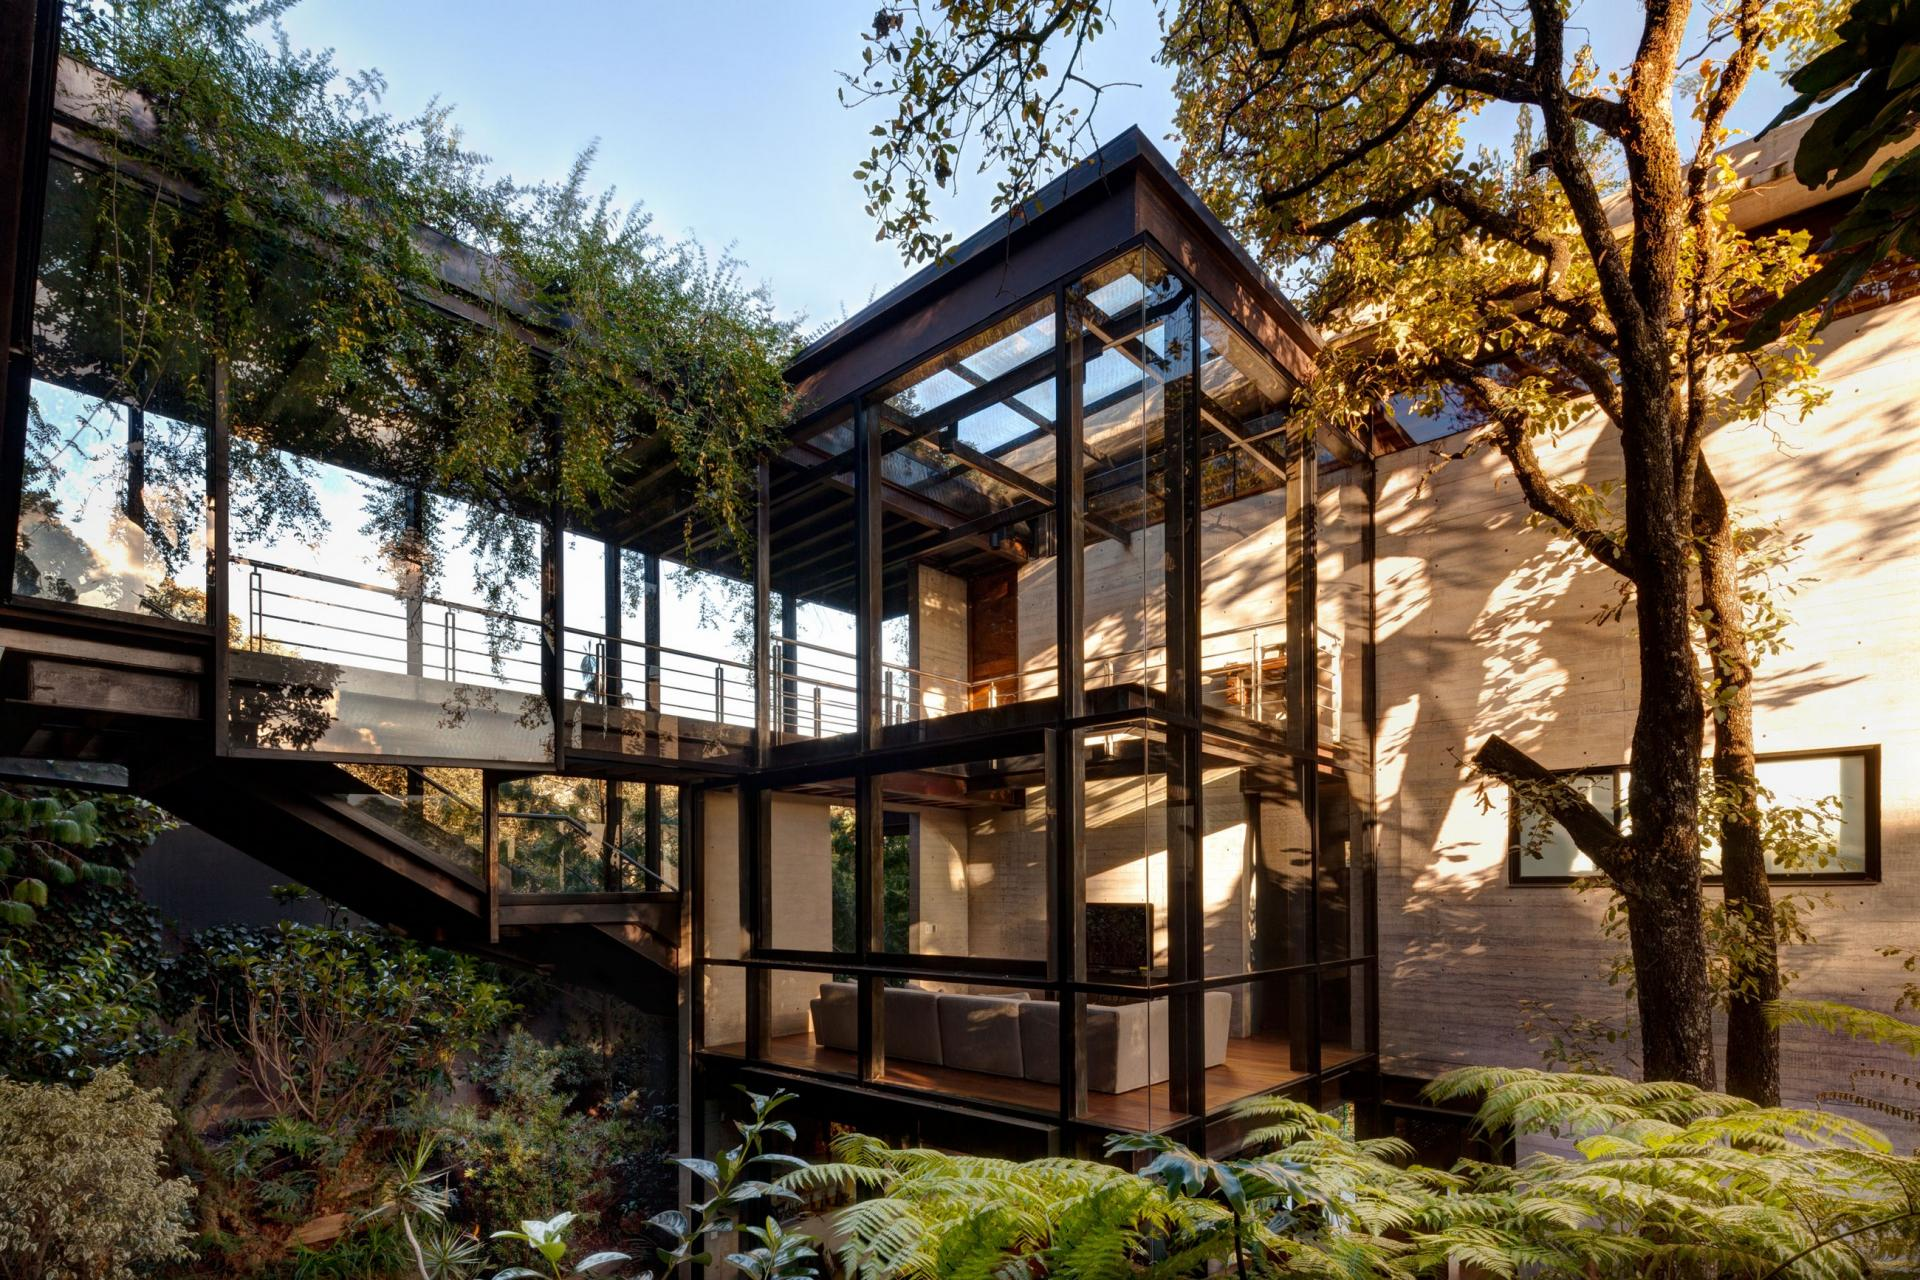 Stunning La Casa en el Bosque tree house proves that ... on nature architecture, natural modern architecture, natural light architecture,